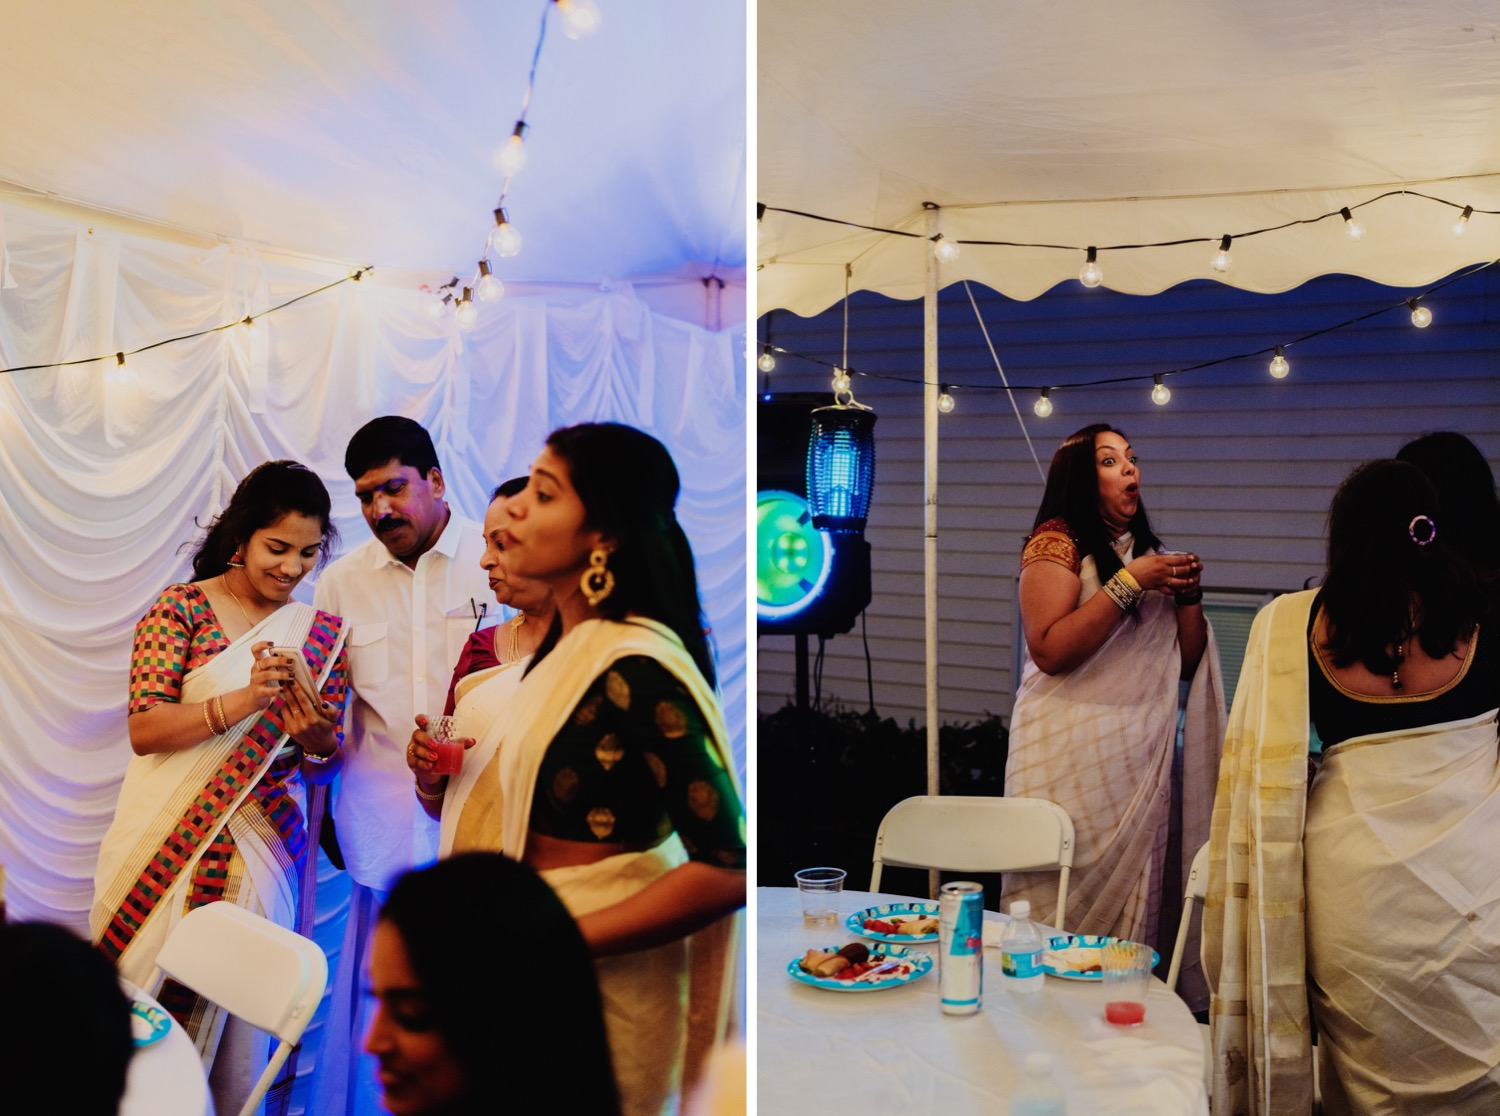 53_HennaParty-Elmhurst-2019_0473_HennaParty-Elmhurst-2019_0497.jpg